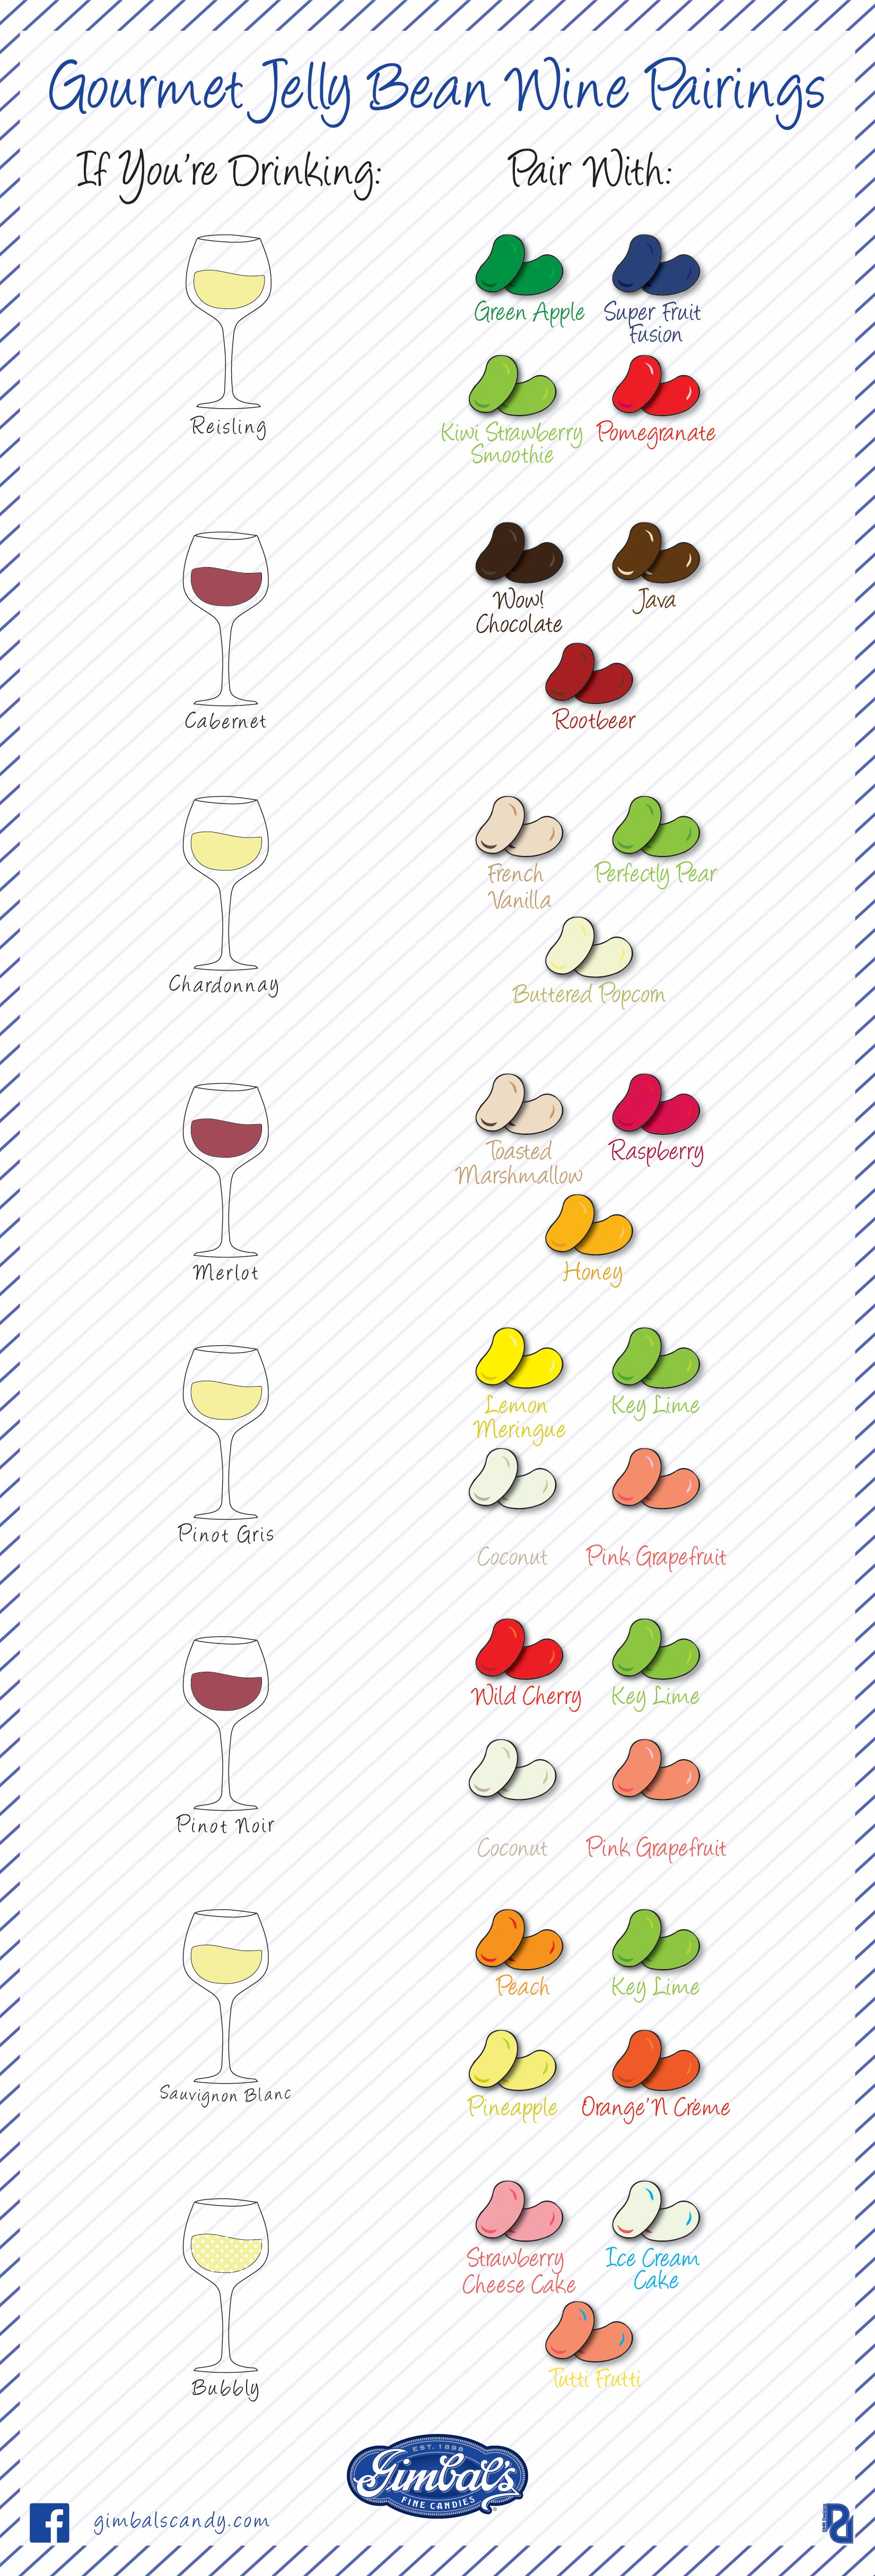 Jelly Bean And Wine Pairings Are The Best Way To Celebrate National